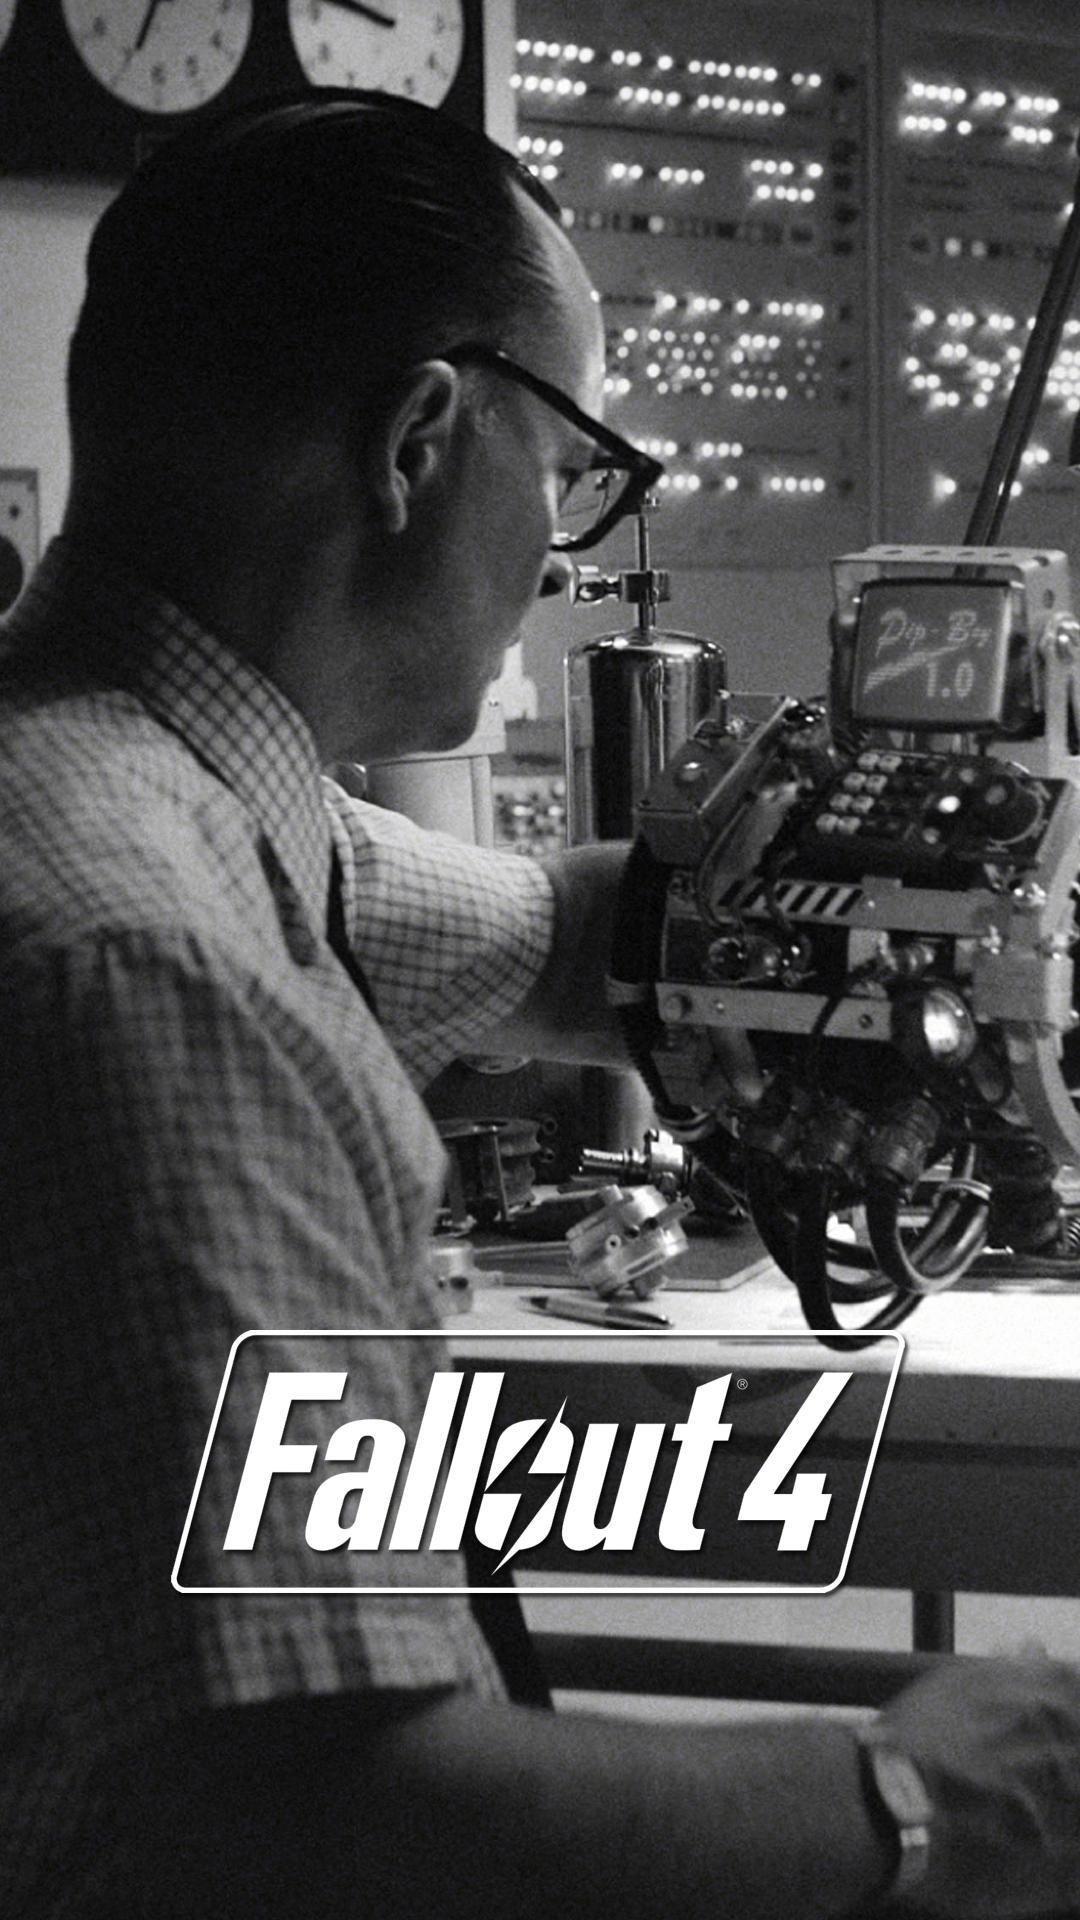 I made some Fallout 4 lock screen wallpapers from E3 stills